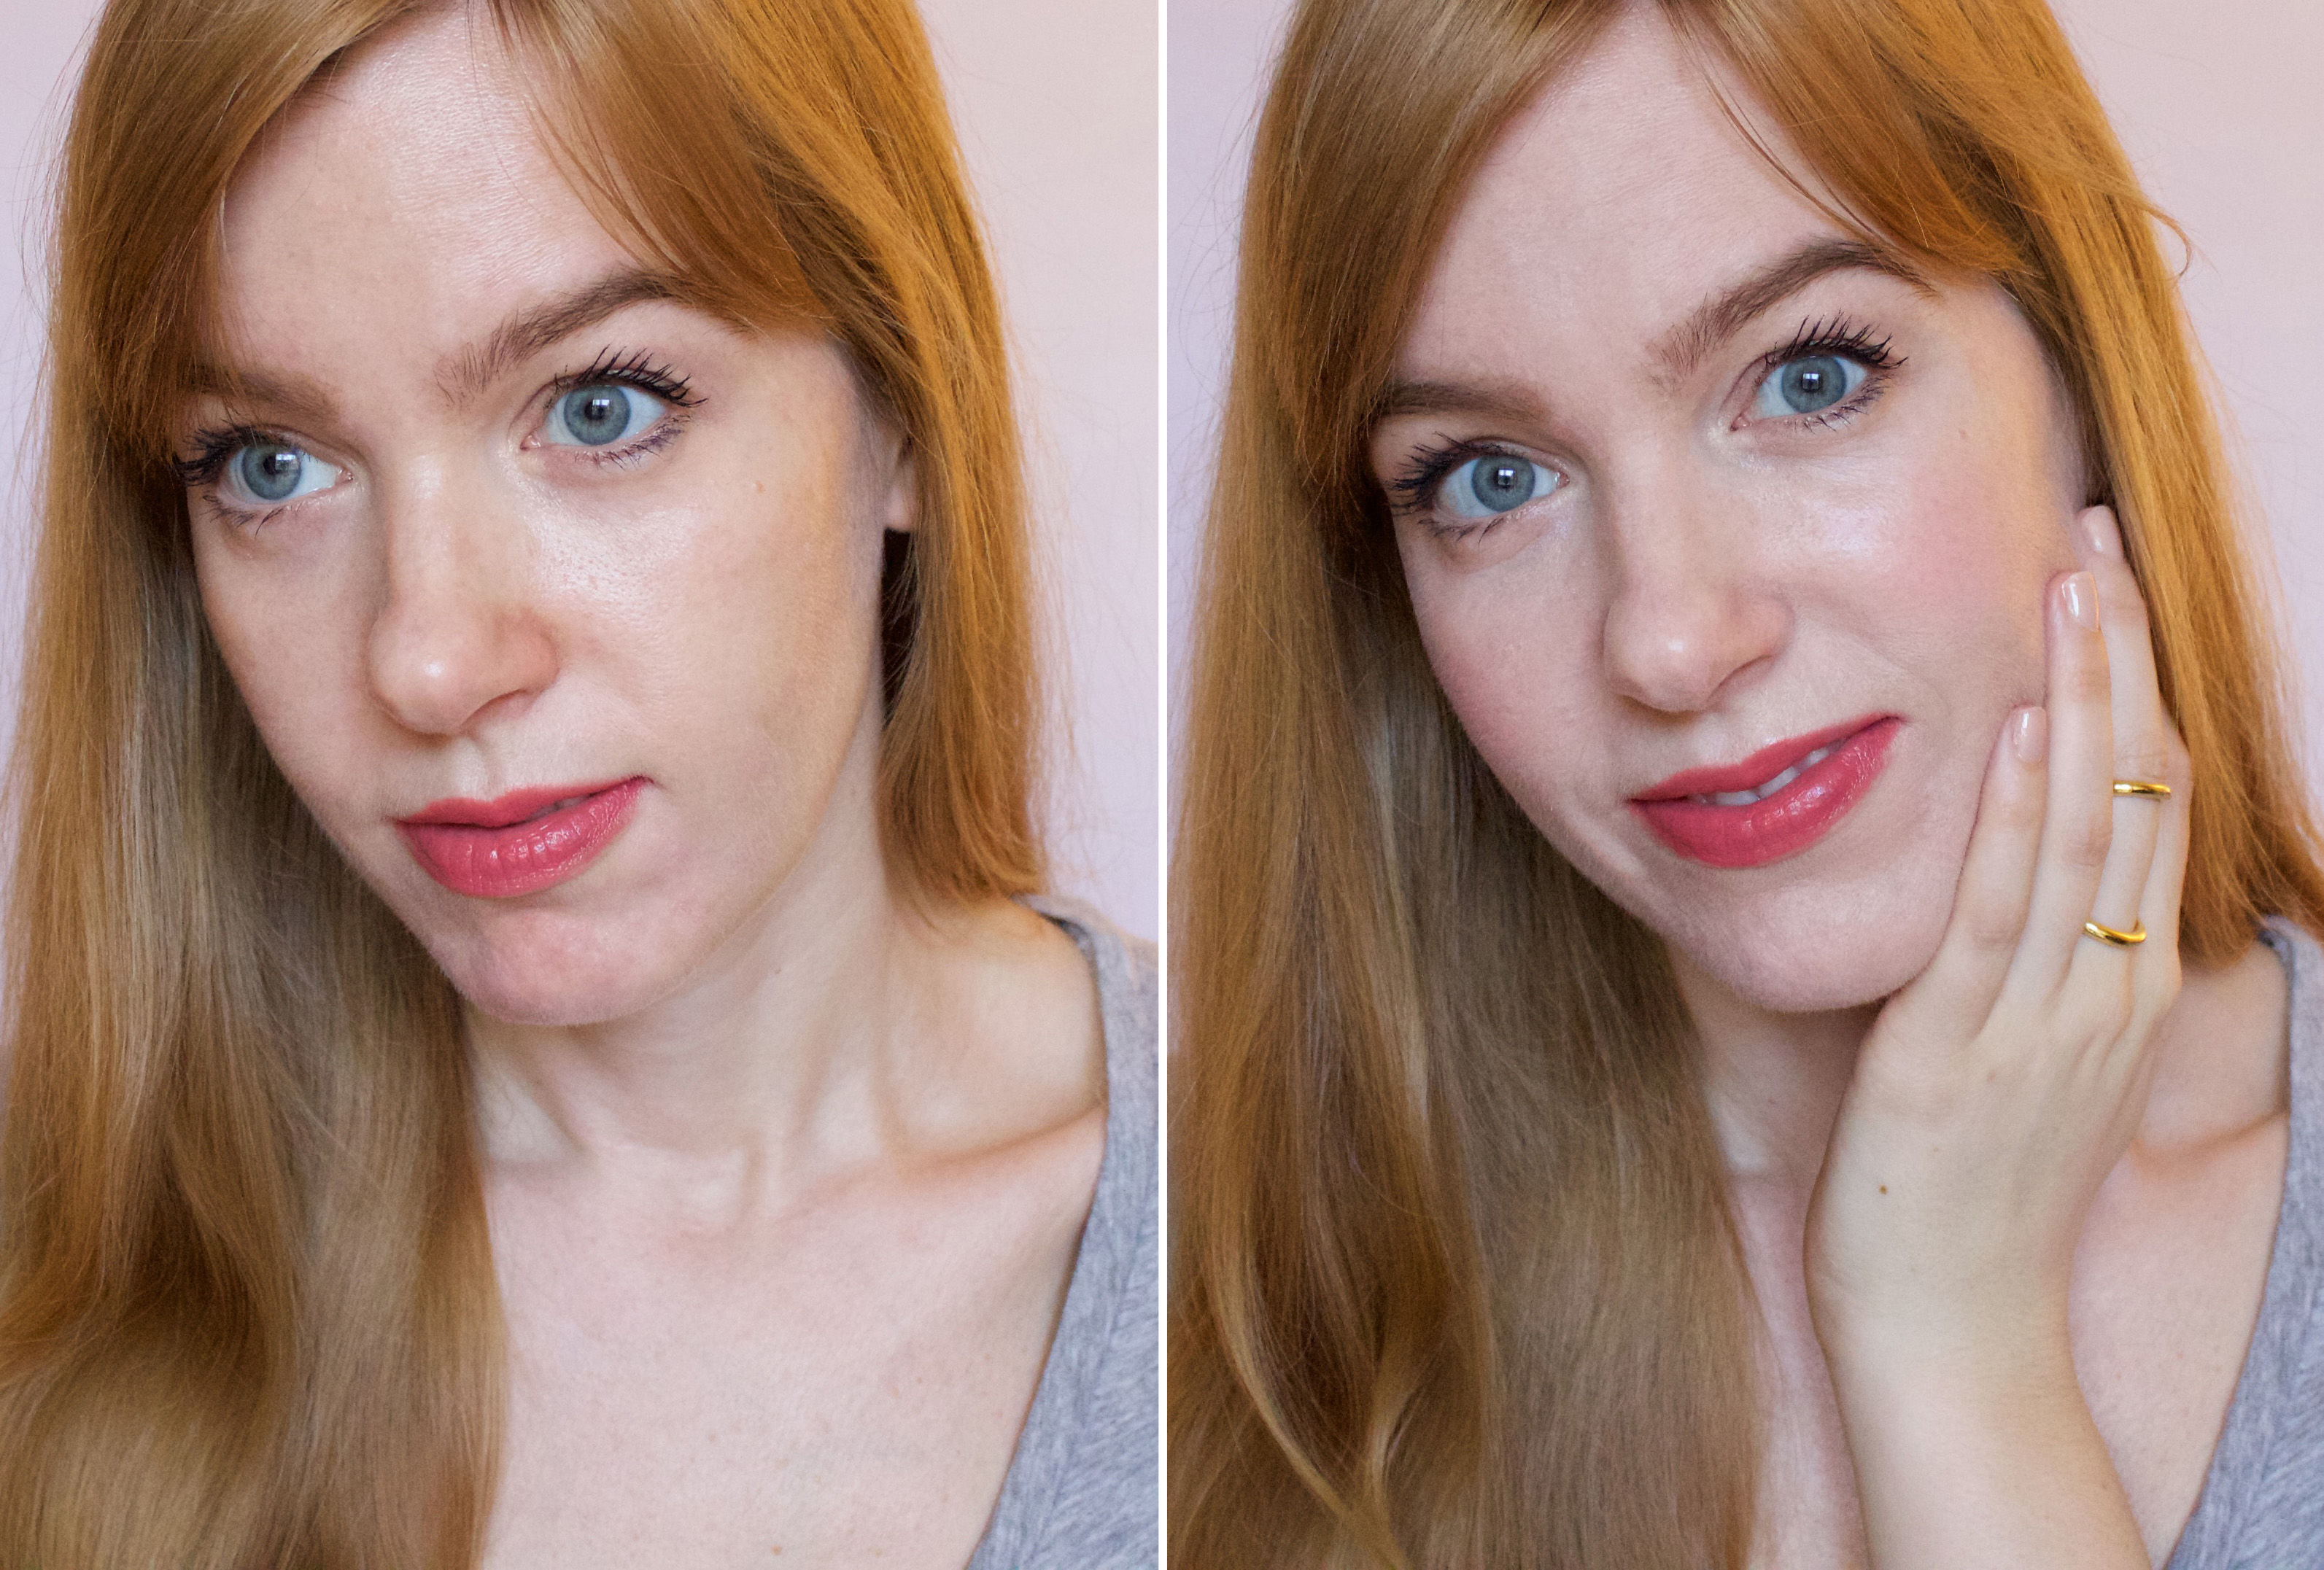 Make Up For Ever Step 1 Skin Equalizers (before and after)